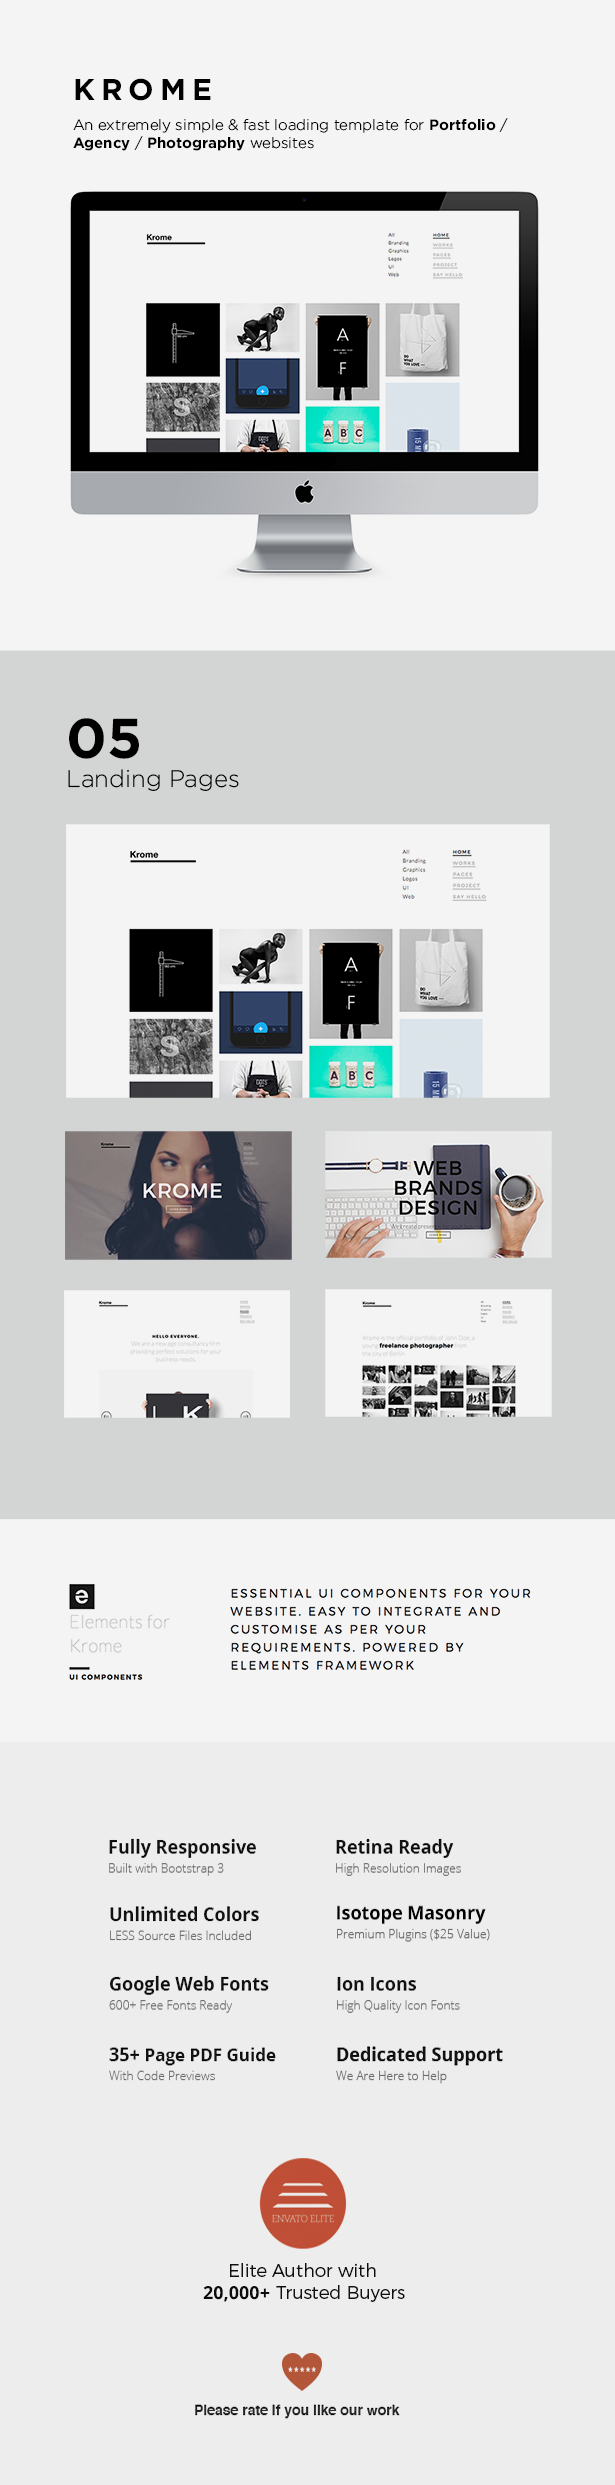 KROME - Pure & Minimal Creative Portfolio / Agency / Photography Template